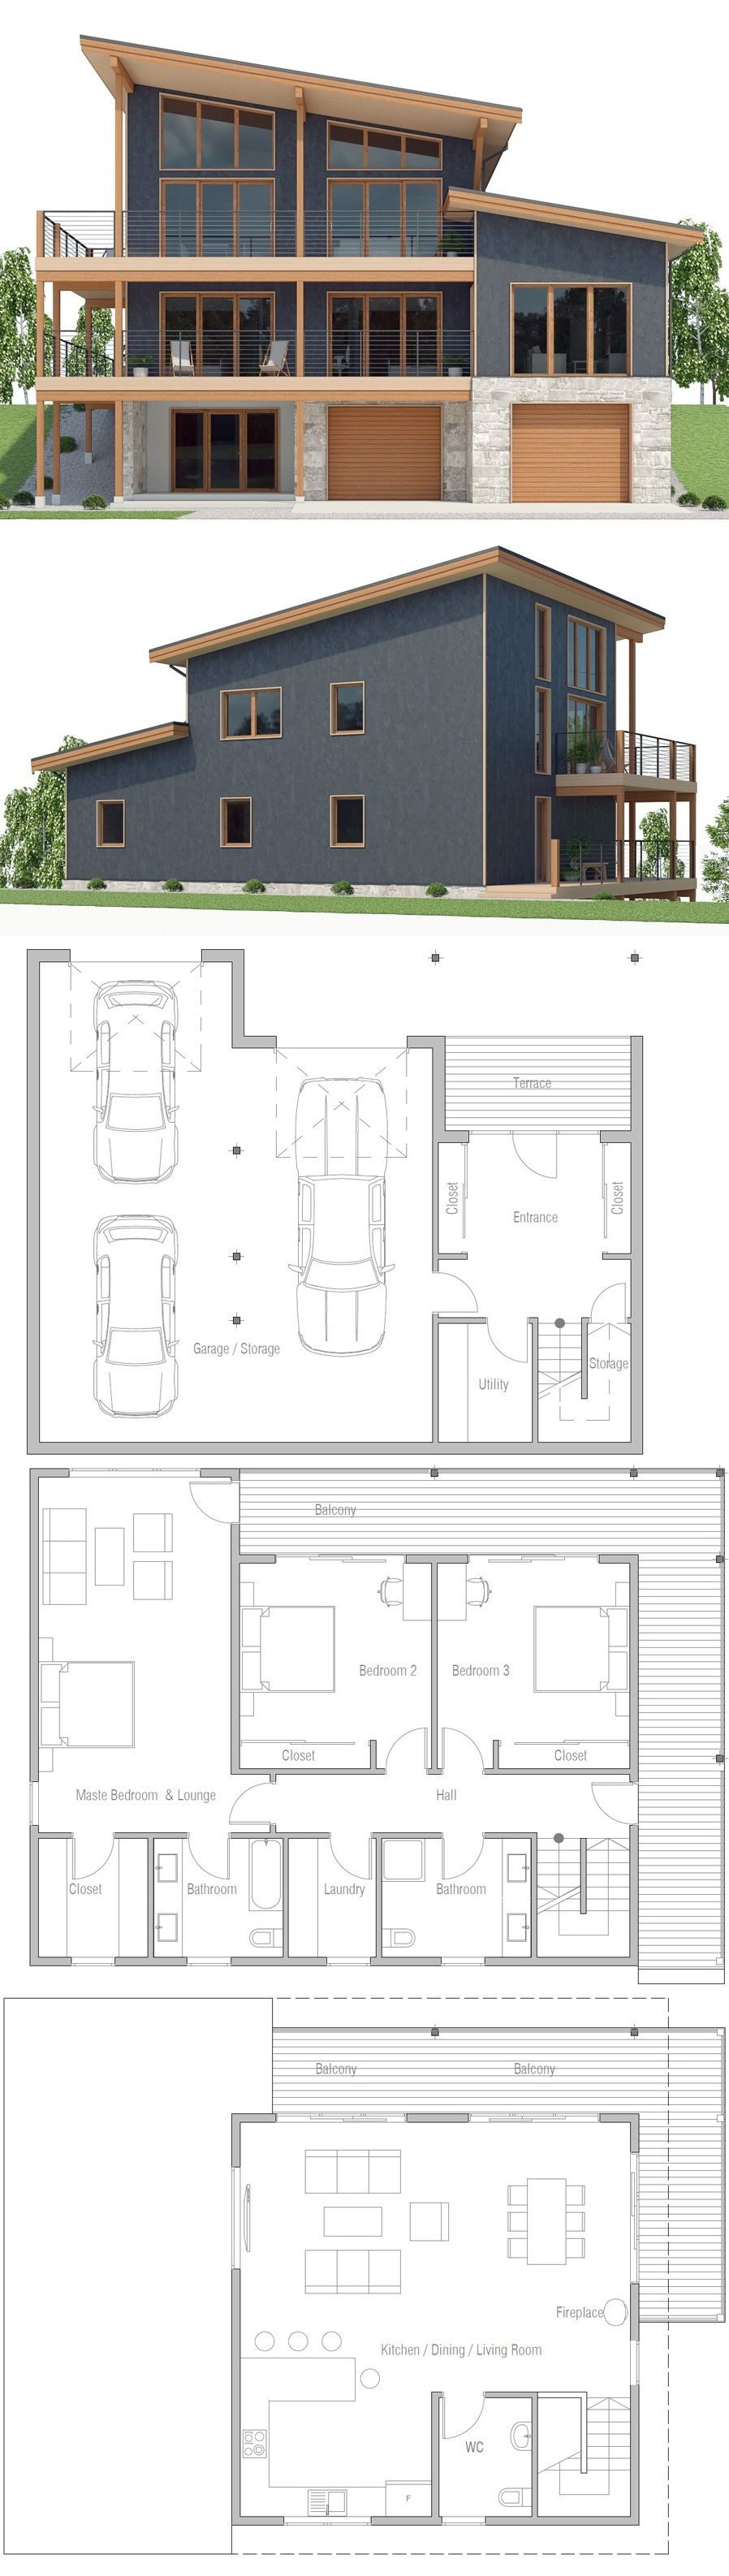 Sloping Lot House Plan Living Pultdachhaus Haus Pl Ne